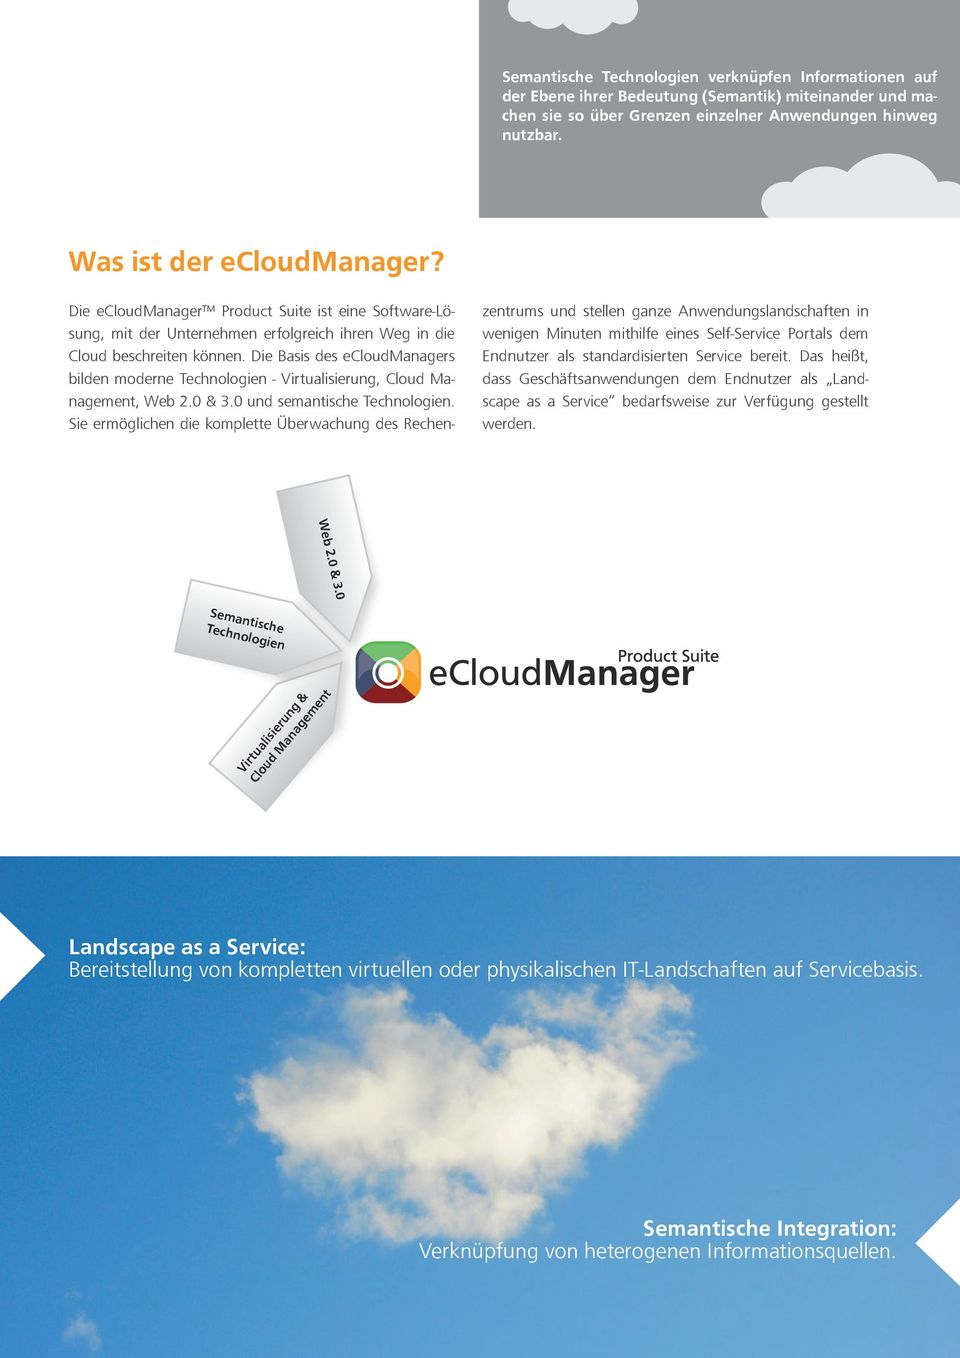 Die Basis des ecloudmanagers bilden moderne Technologien - Virtualisierung, Cloud Management, Web 2.0 & 3.0 und semantische Technologien.